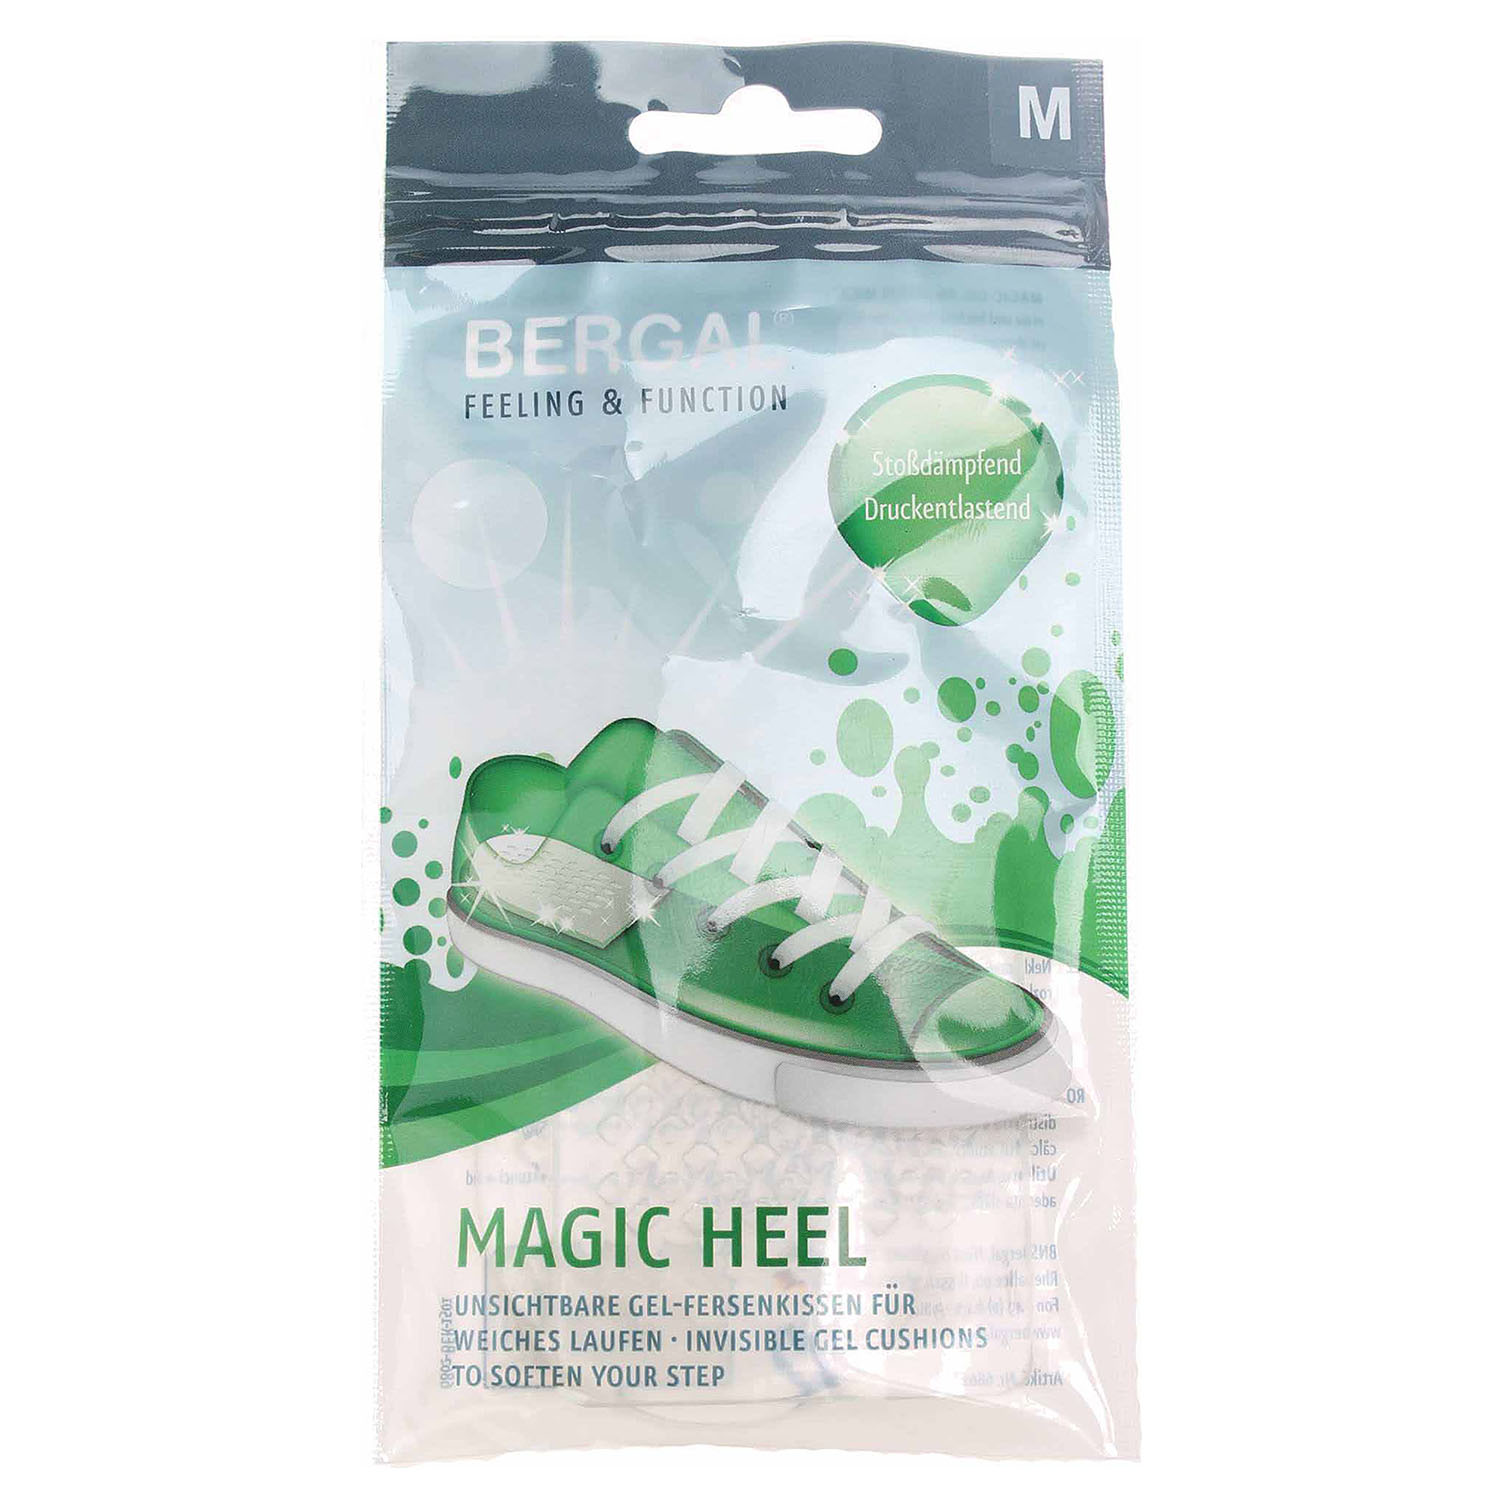 Ecco Bergal Magic Heel podpatěnky 14001228